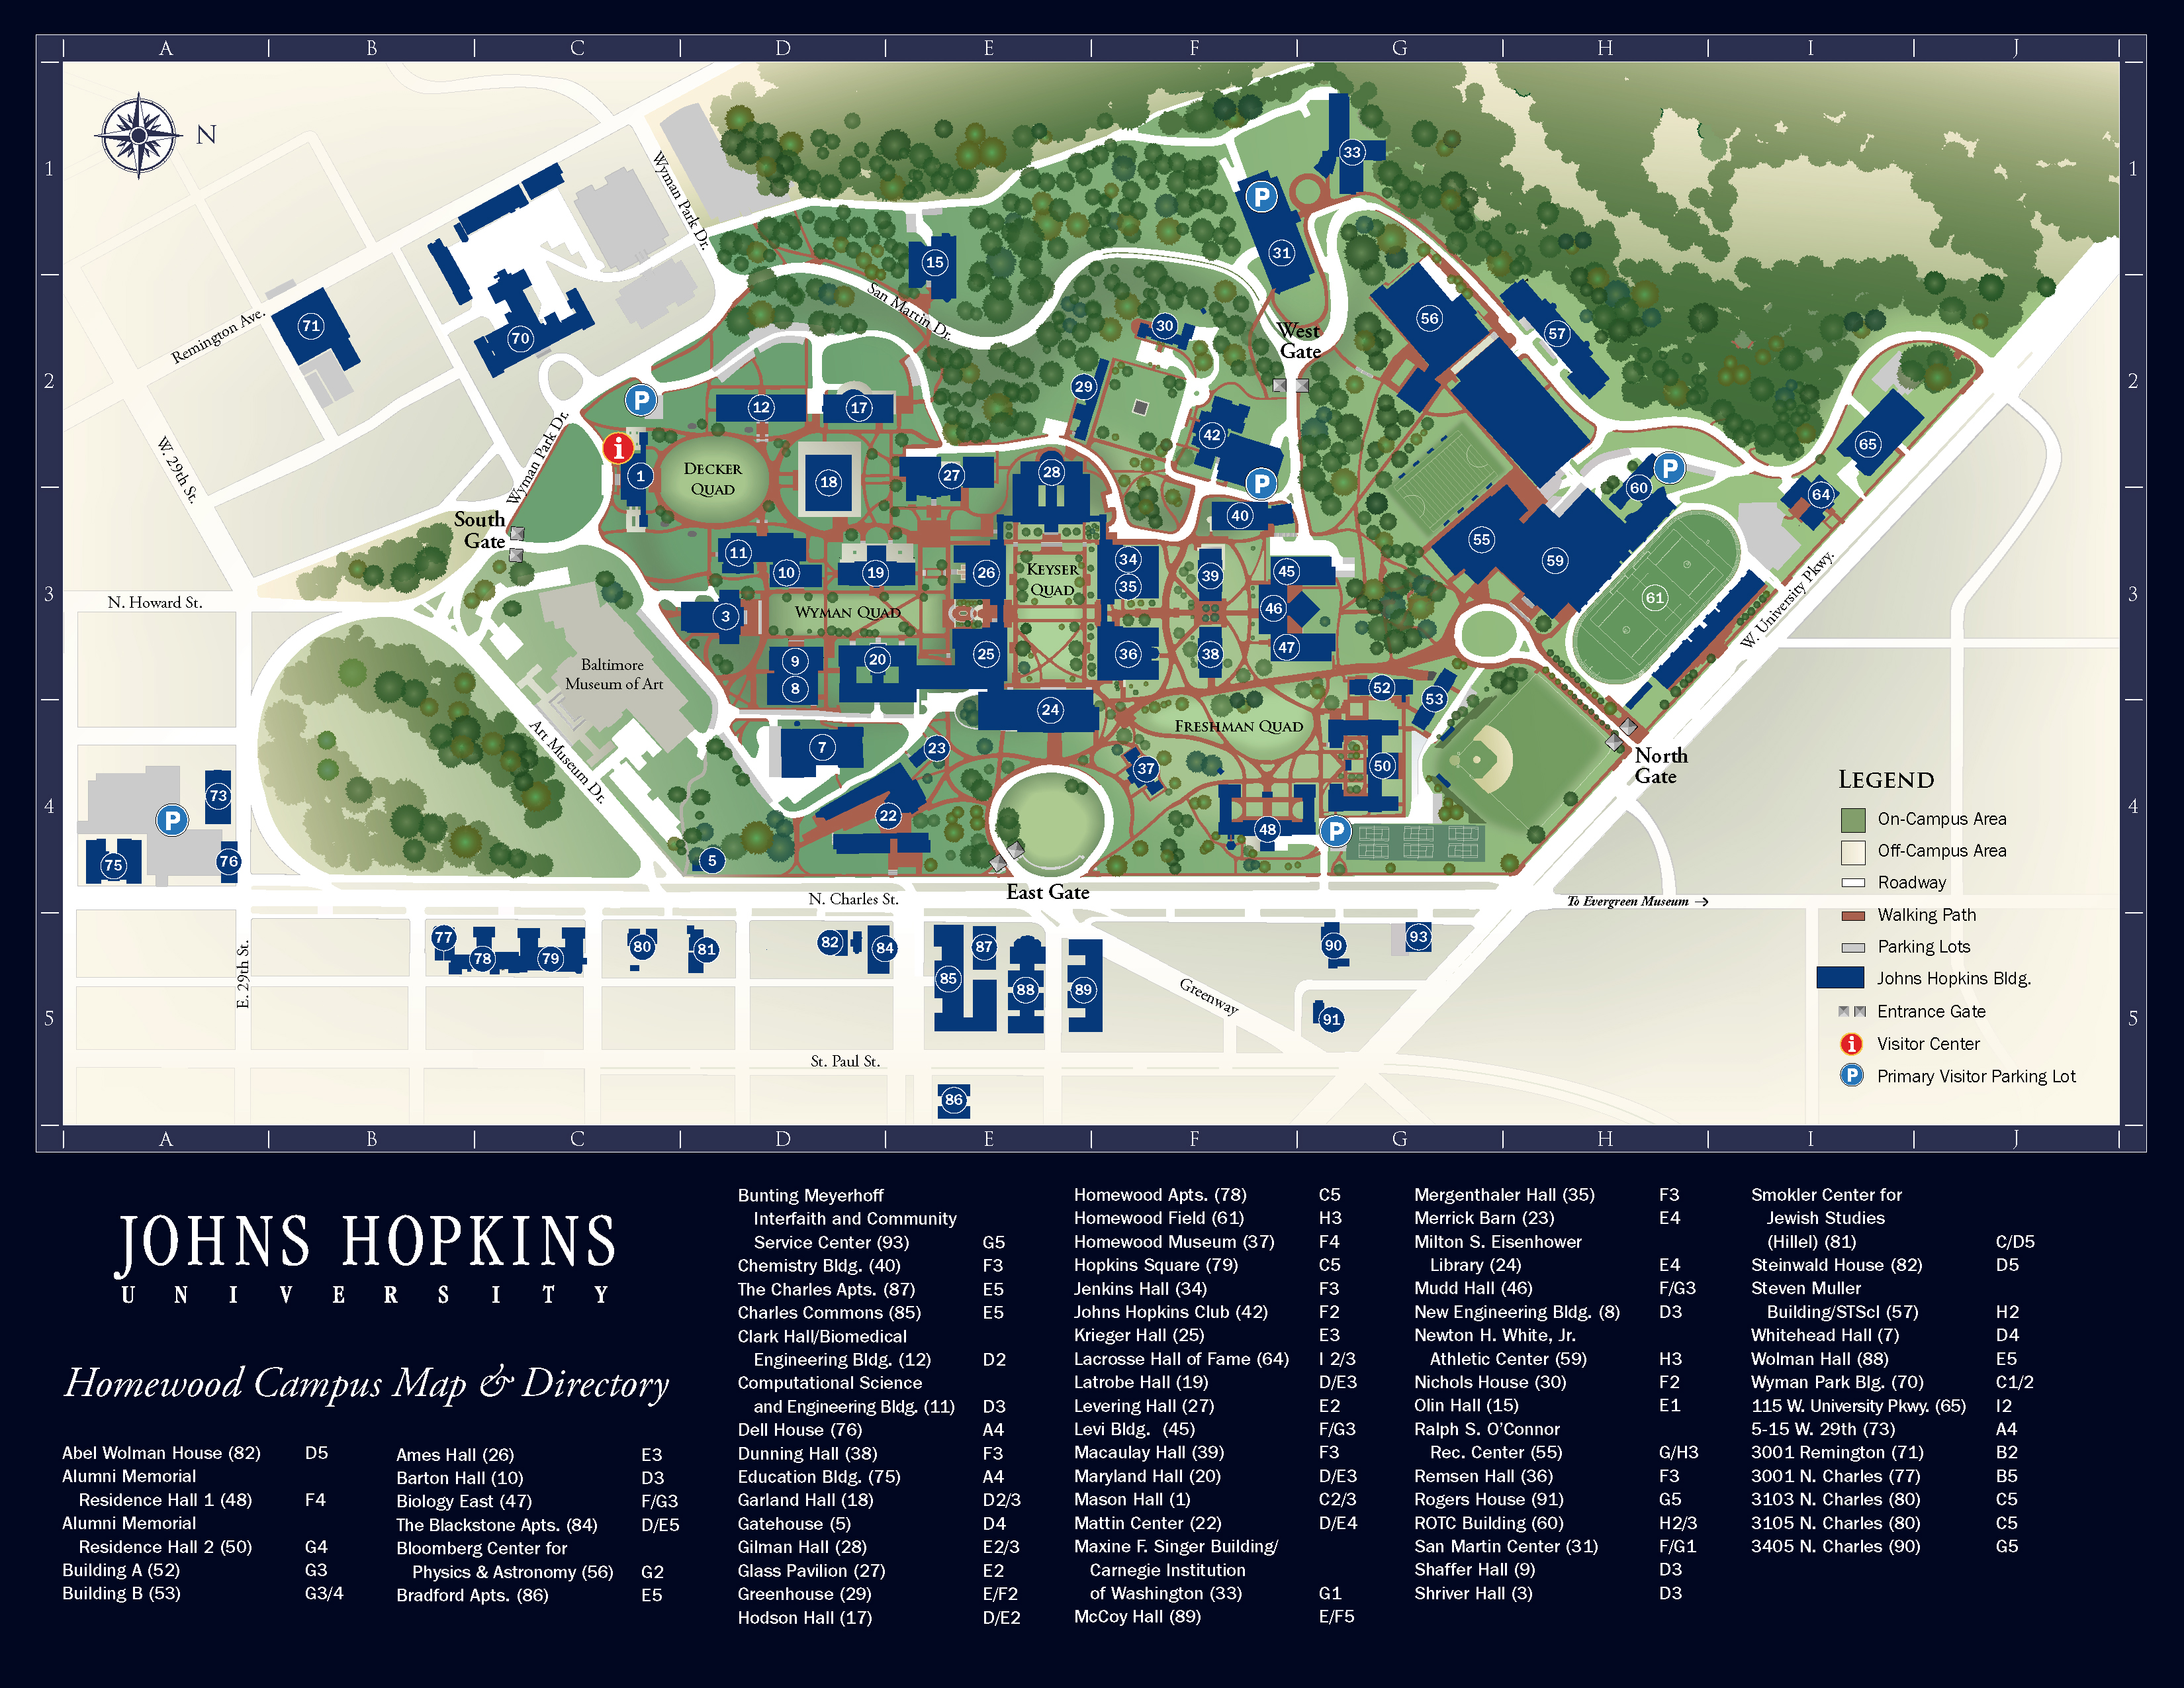 Johns Hopkins Campus Map John Hopkins Campus Map | autobedrijfmaatje